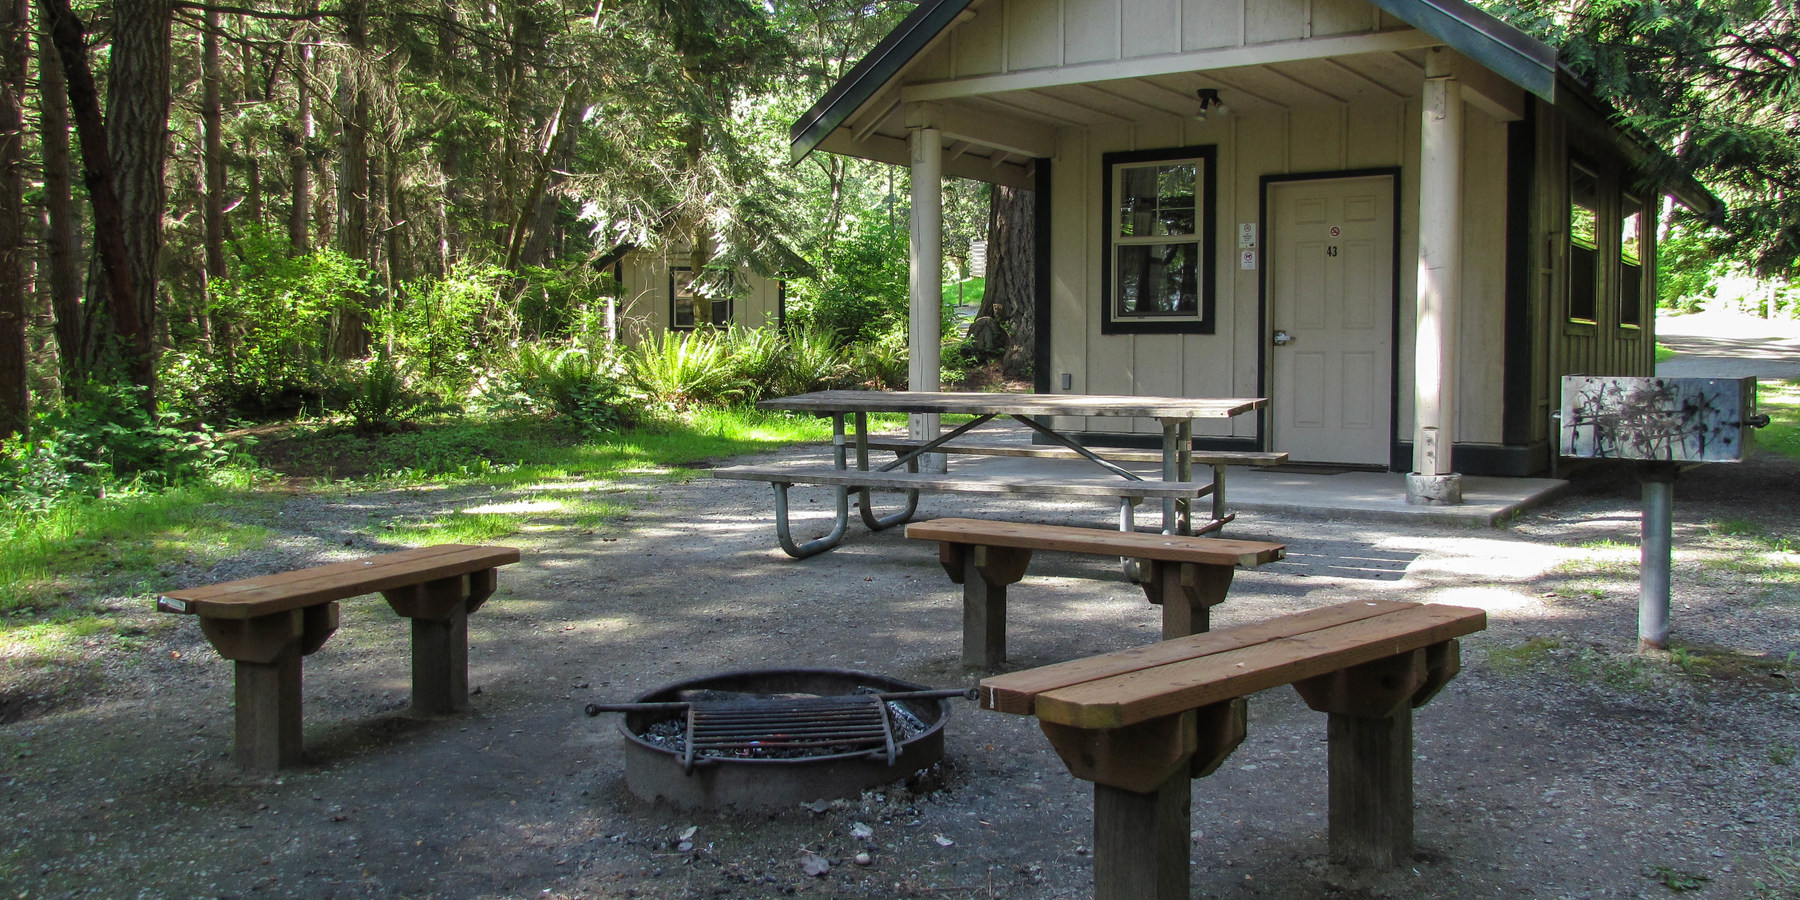 Merveilleux ... One Of The Five Reservable Cabins.  Camano Island State Park Campground  ...